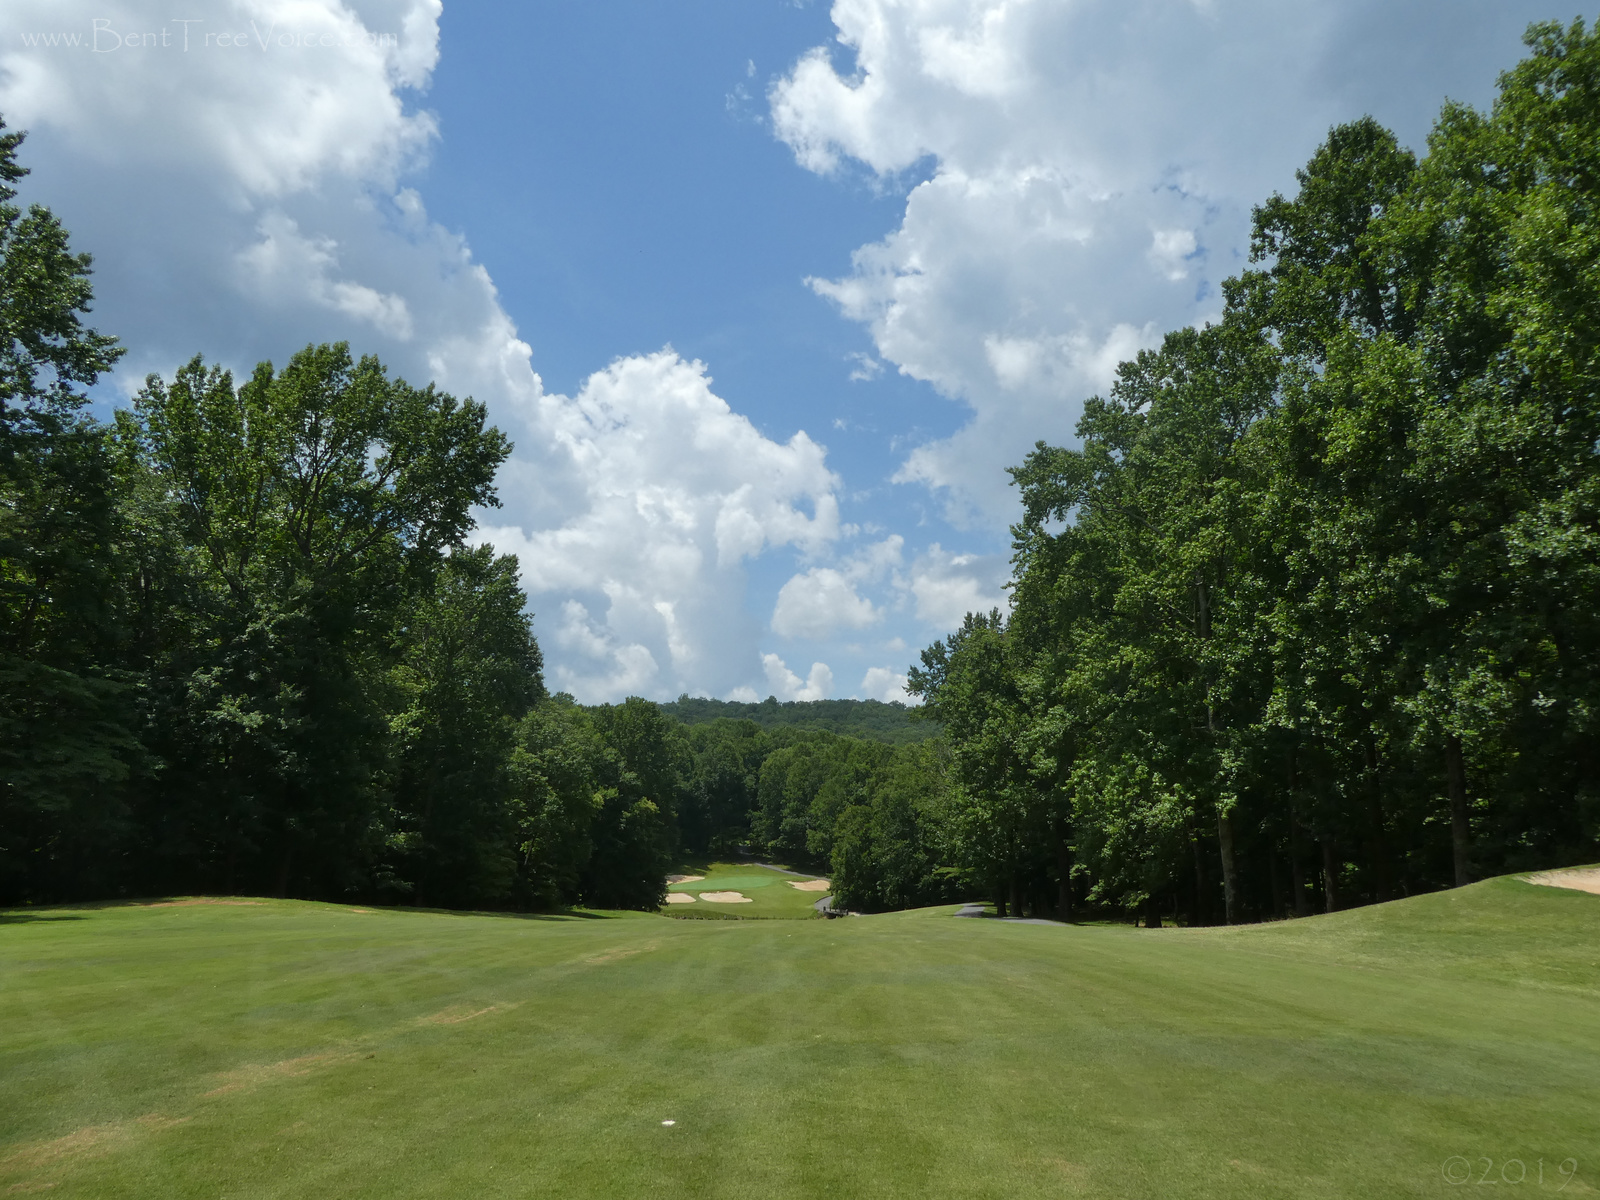 July 5, 2019 - Hole 14, Bent Tree Golf Course